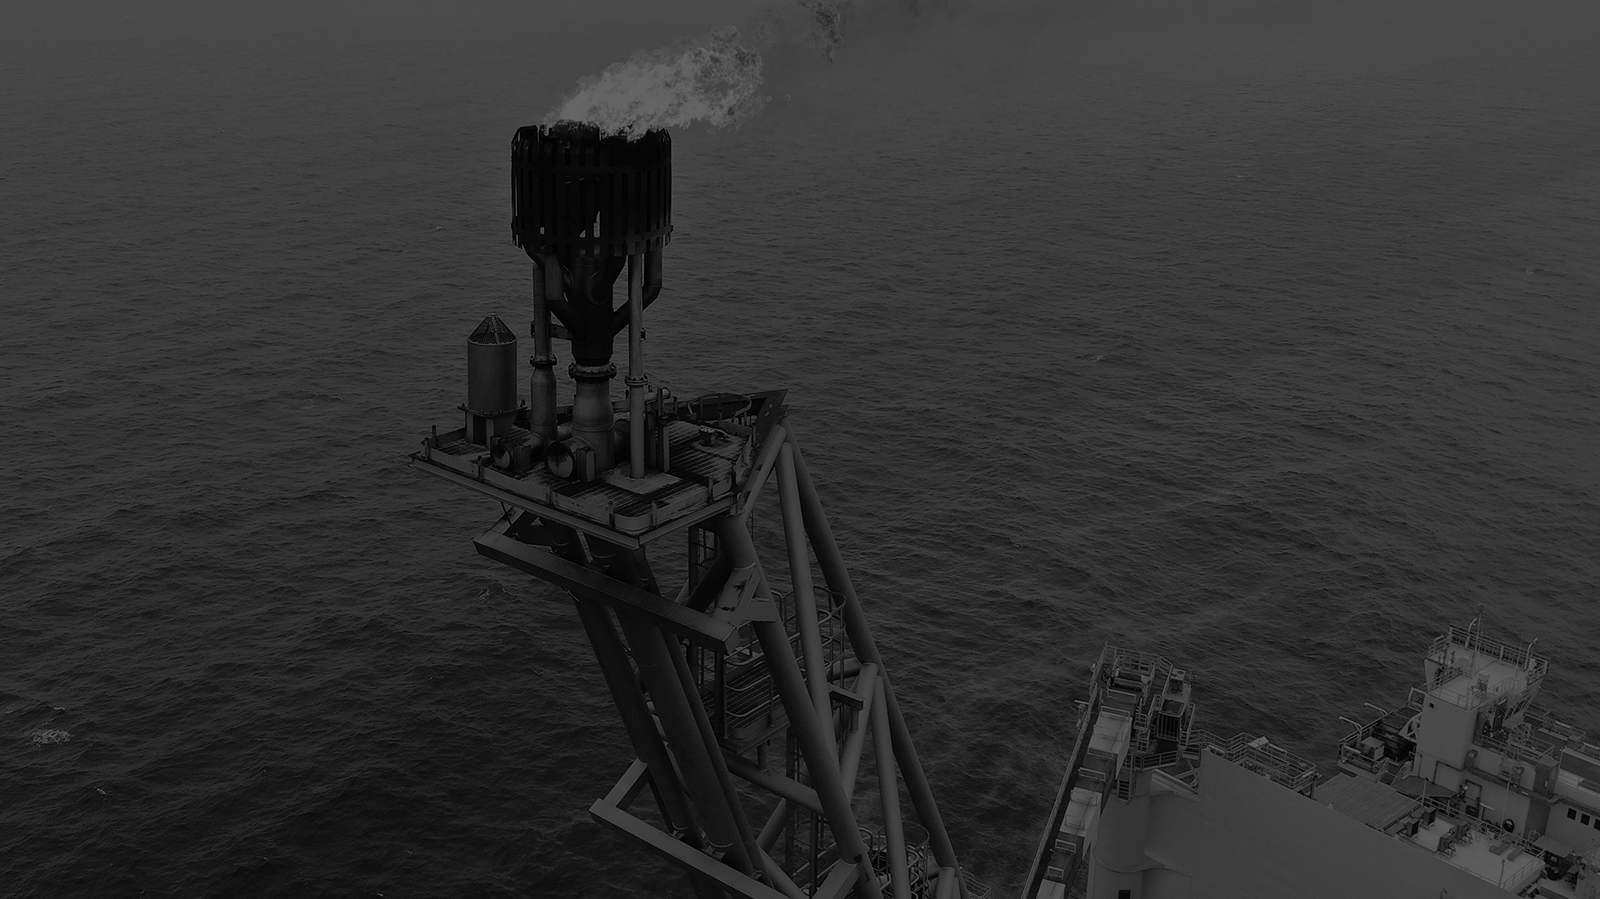 Extending Flare Boom Project to Include Hull Inspections